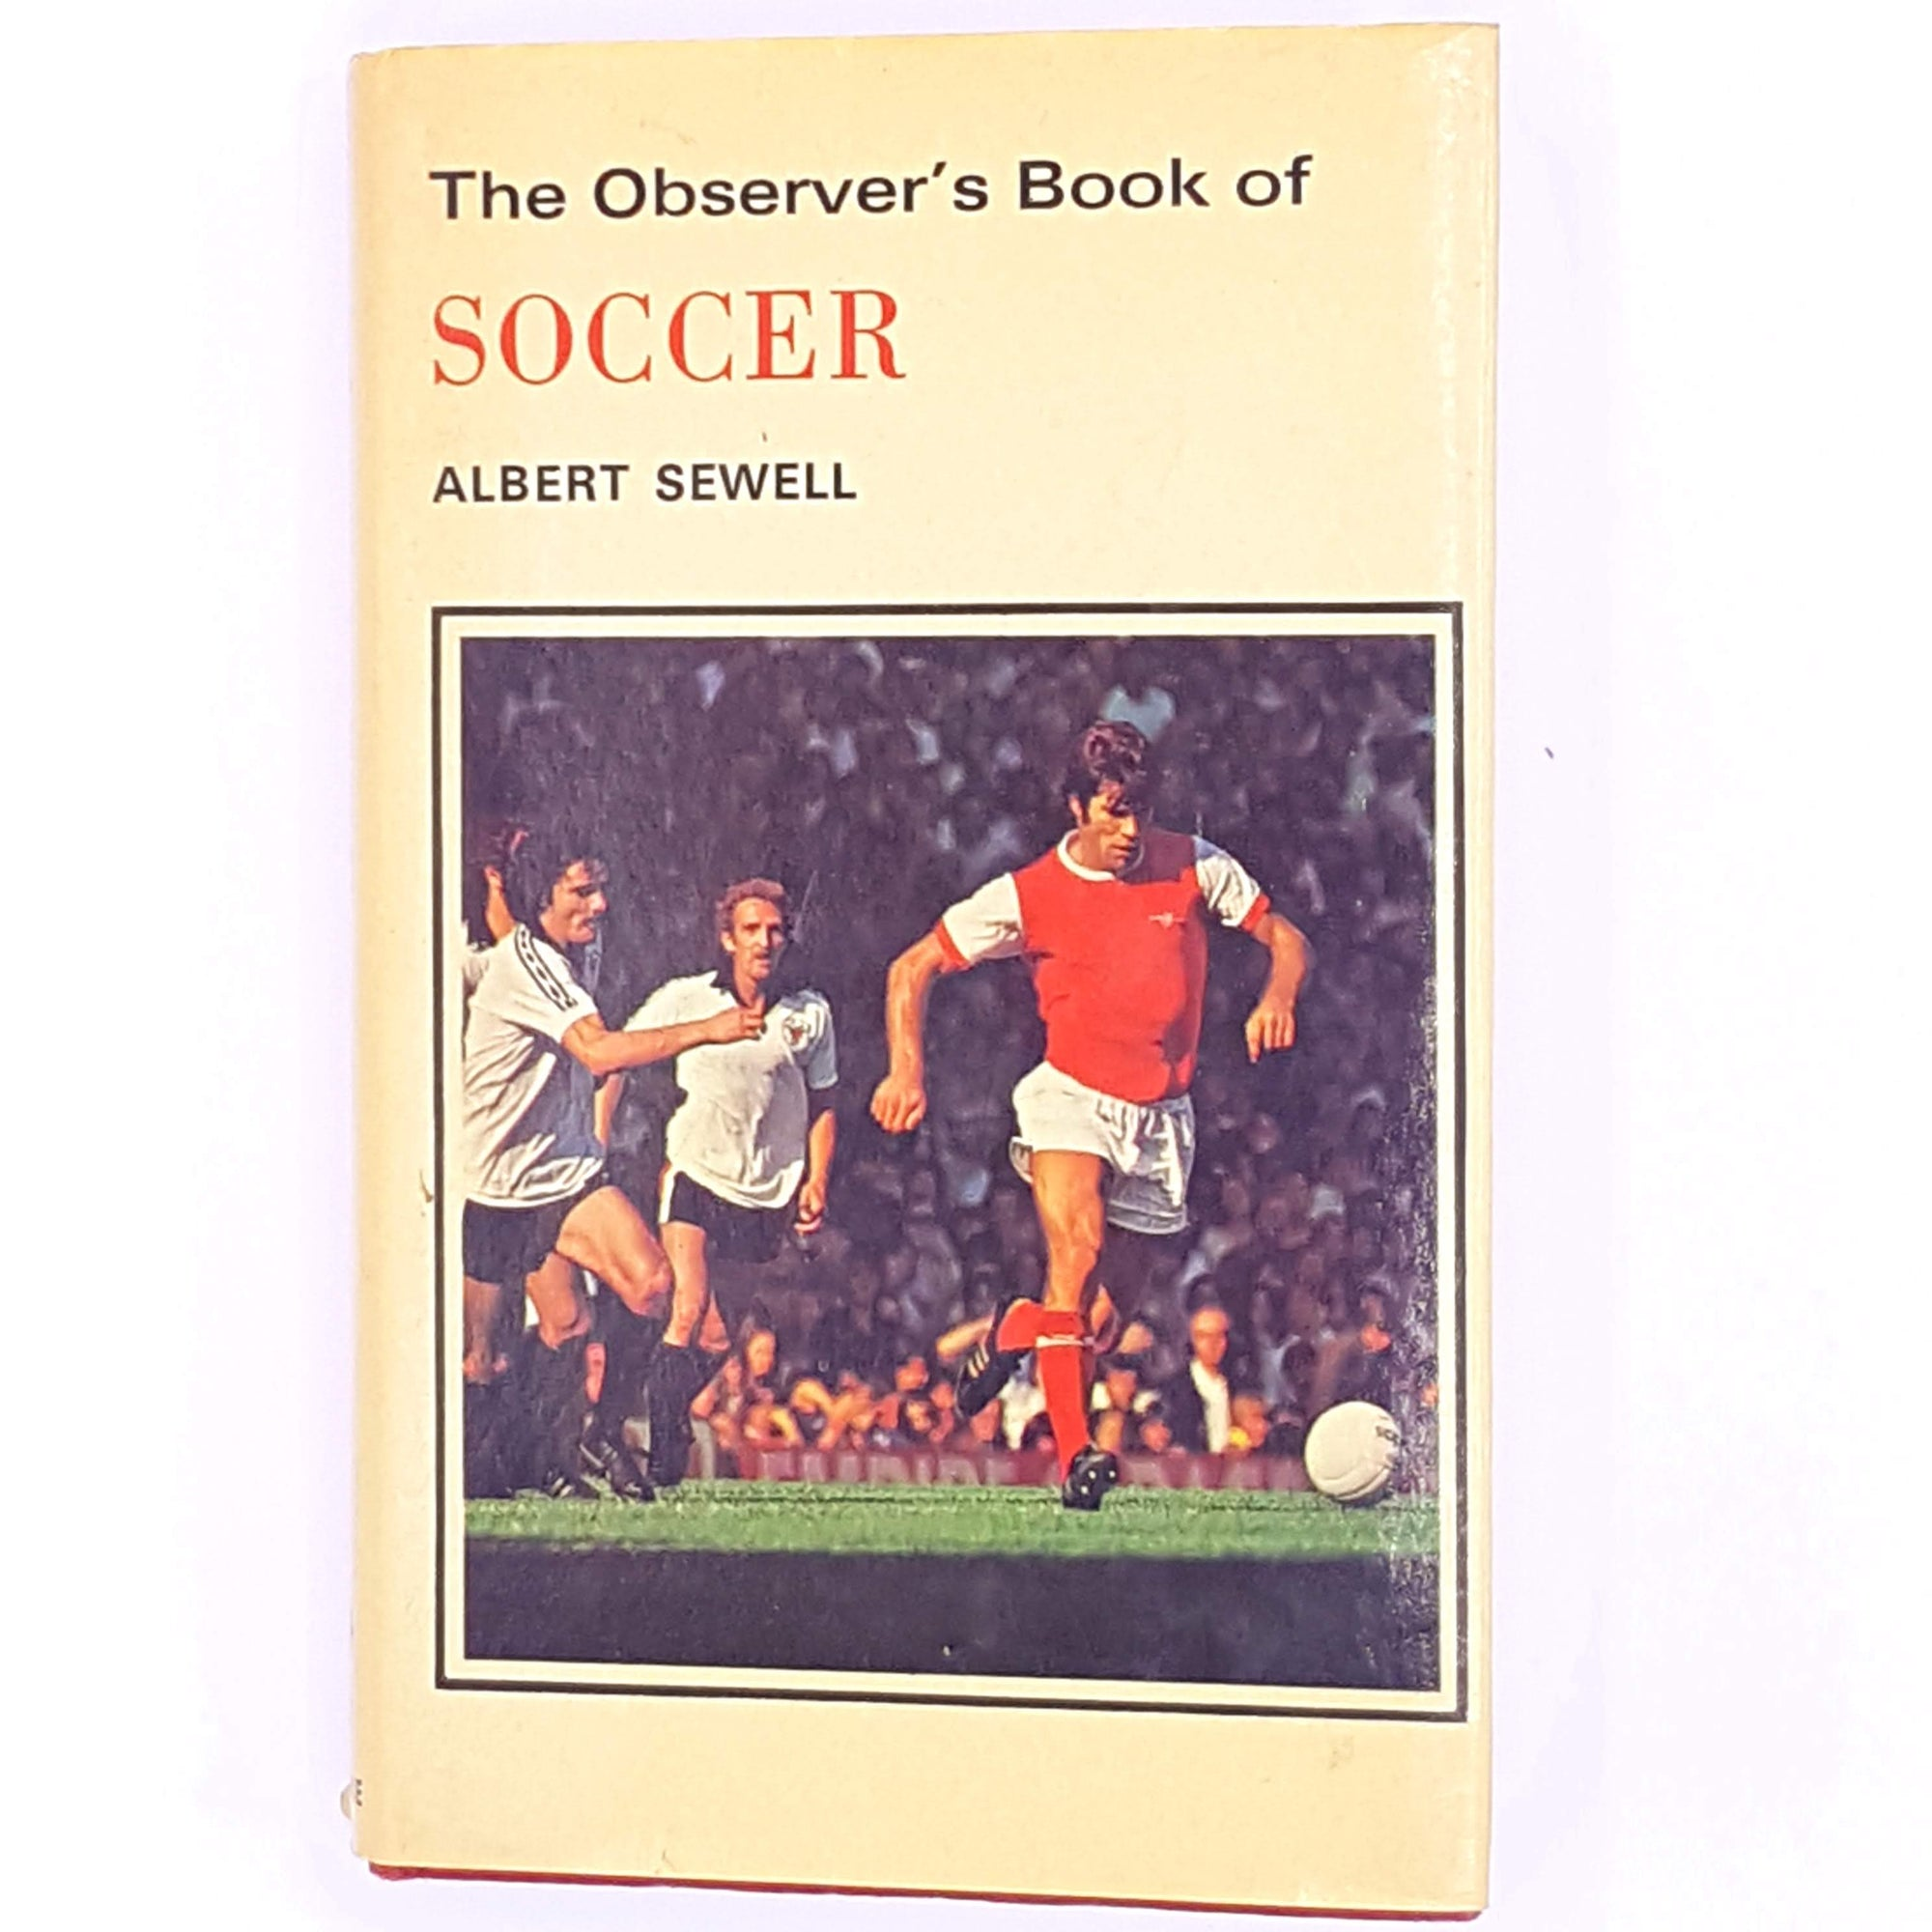 soccer-observer-books-antique-vintage-decorative-classic-football-albert-sewell-thrift-patterned-country-house-library-old-fourth-edition-